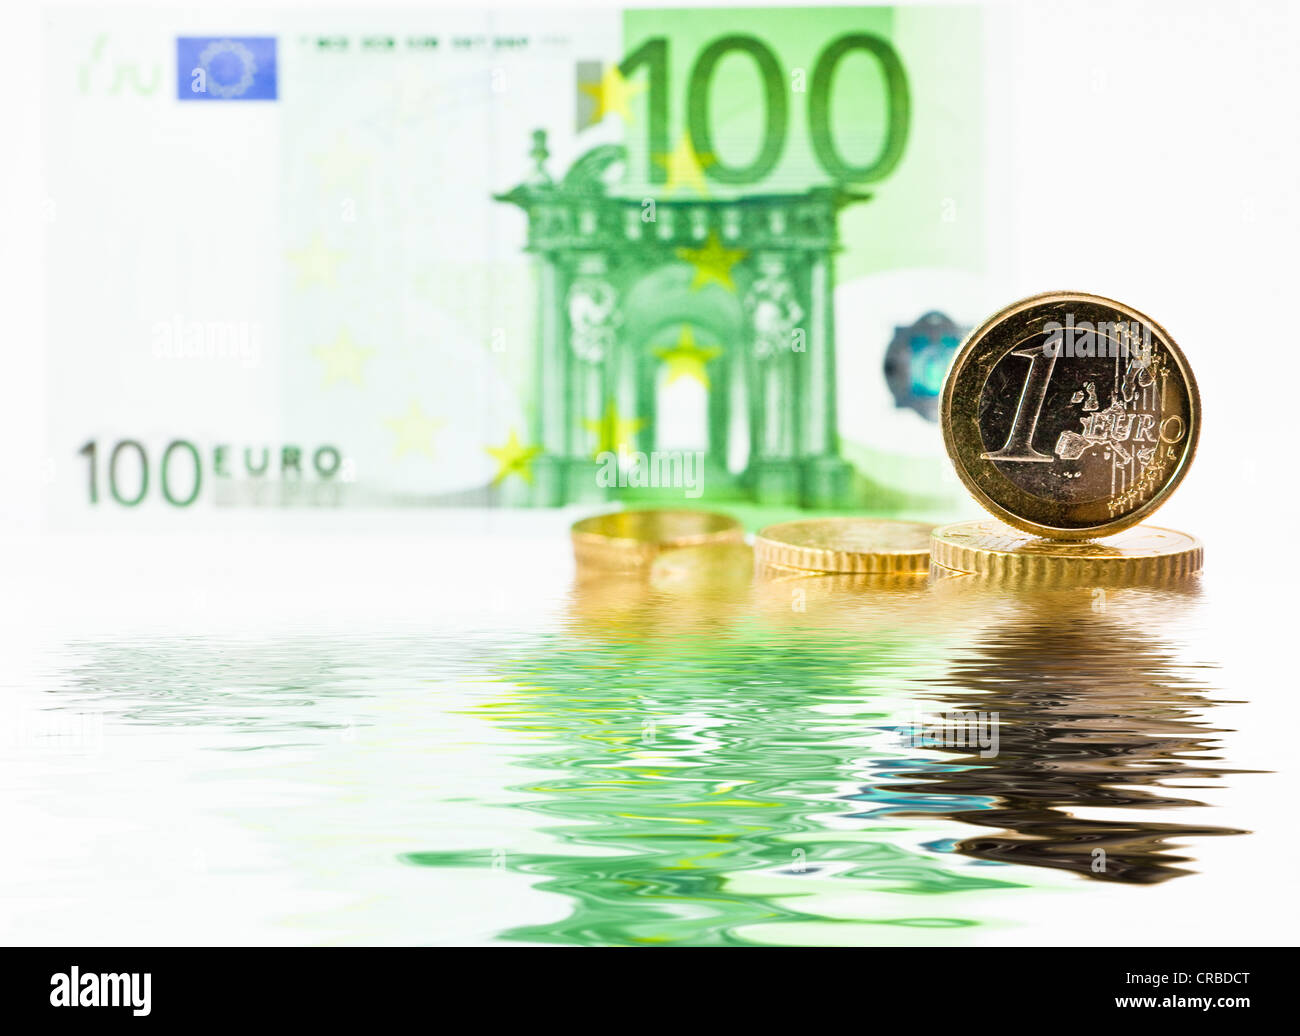 Euro note and euro coin, water, symbolic image for the dilution of the euro, decline in the value of the euro - Stock Image